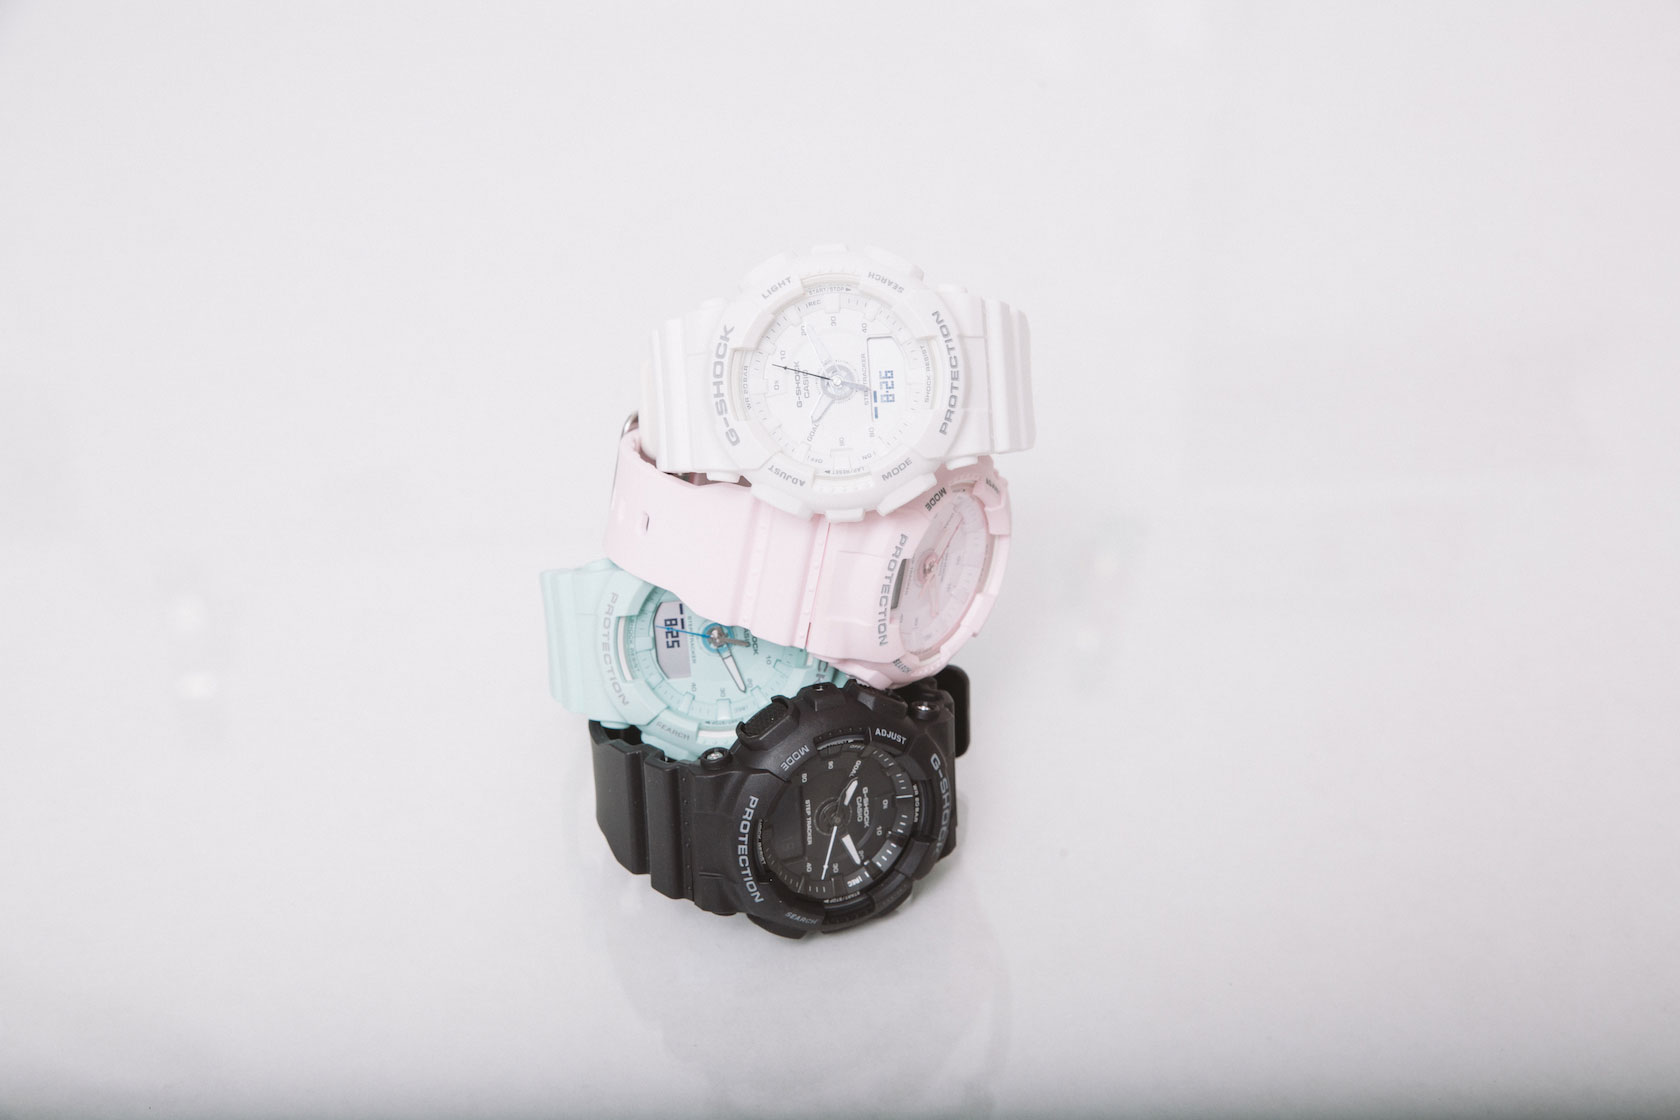 The new G-Shock Series S watch by Casio